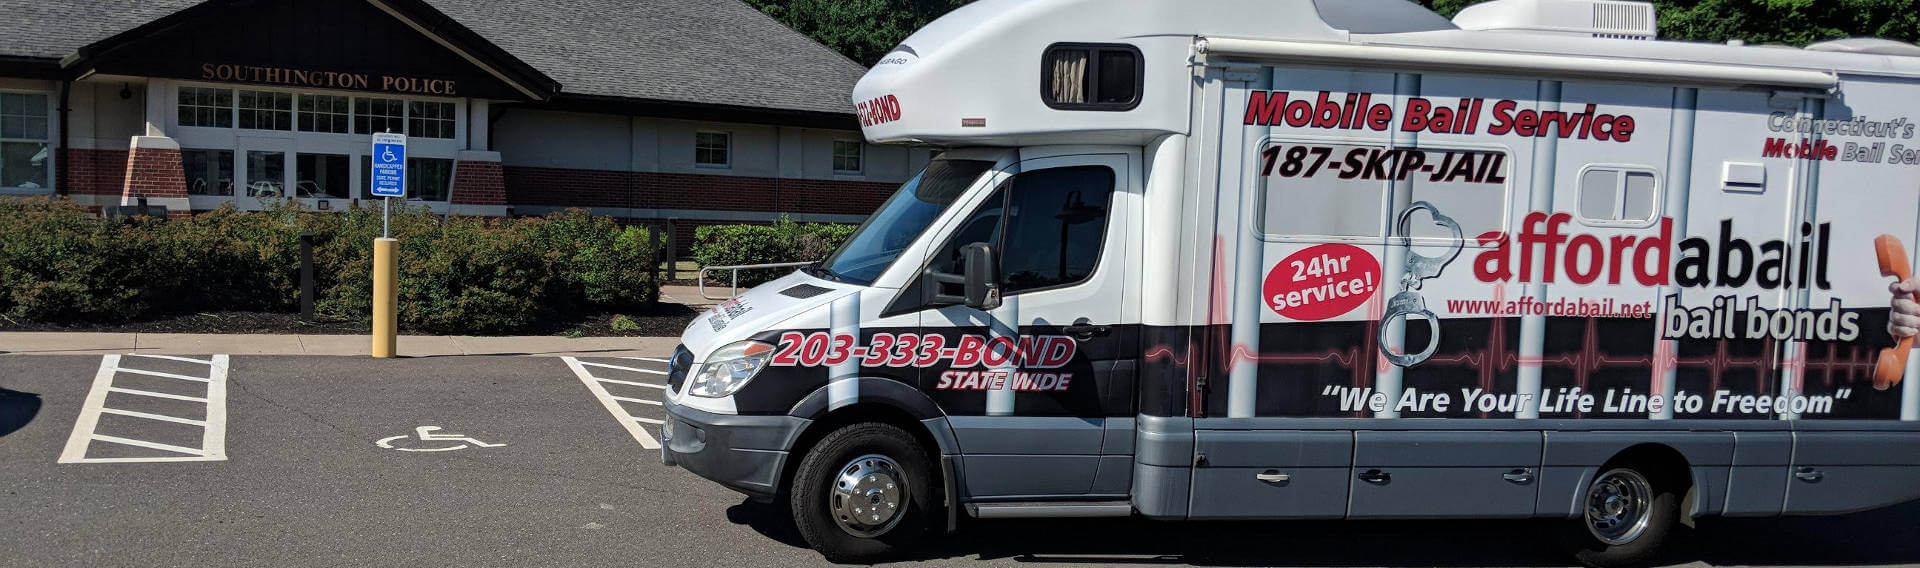 Mobile bail bonds service in Southington, CT